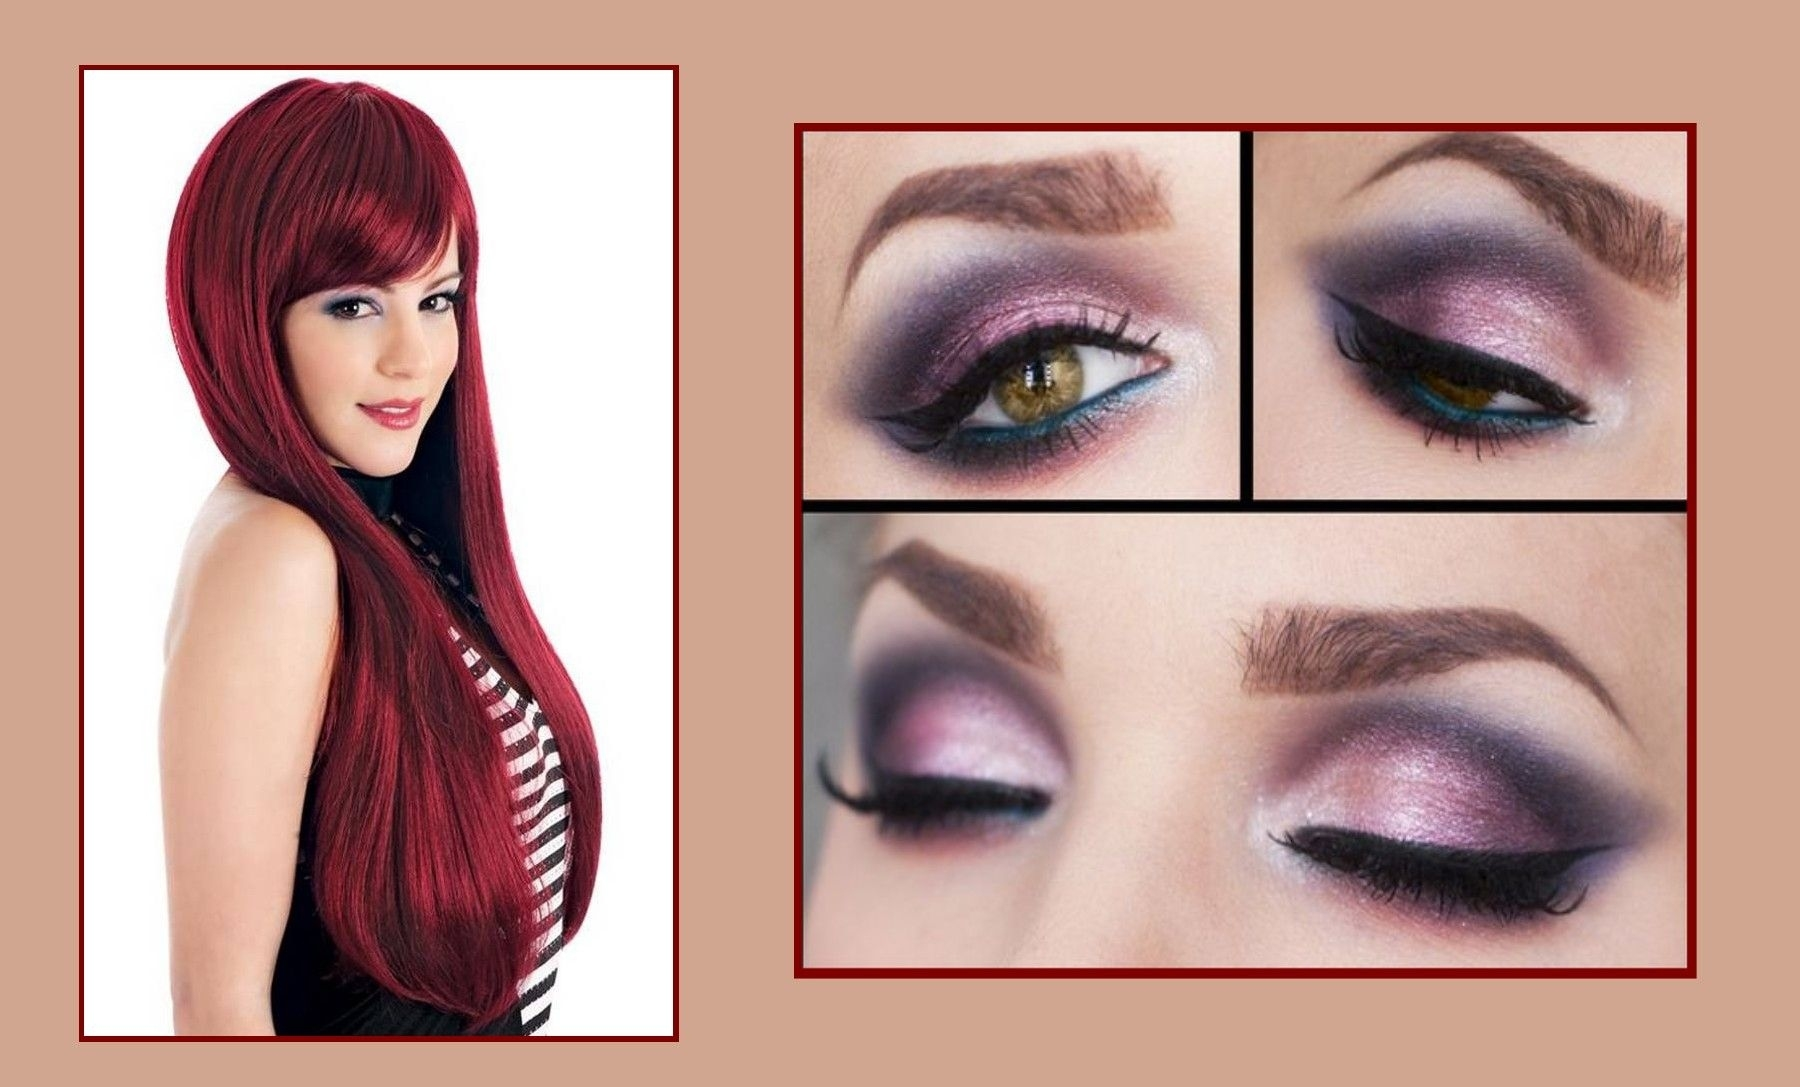 Makeup For Hazel Green Eyes | Makeup For Green Eyes And Red regarding Best Eyeshadow For Hazel Eyes And Red Hair